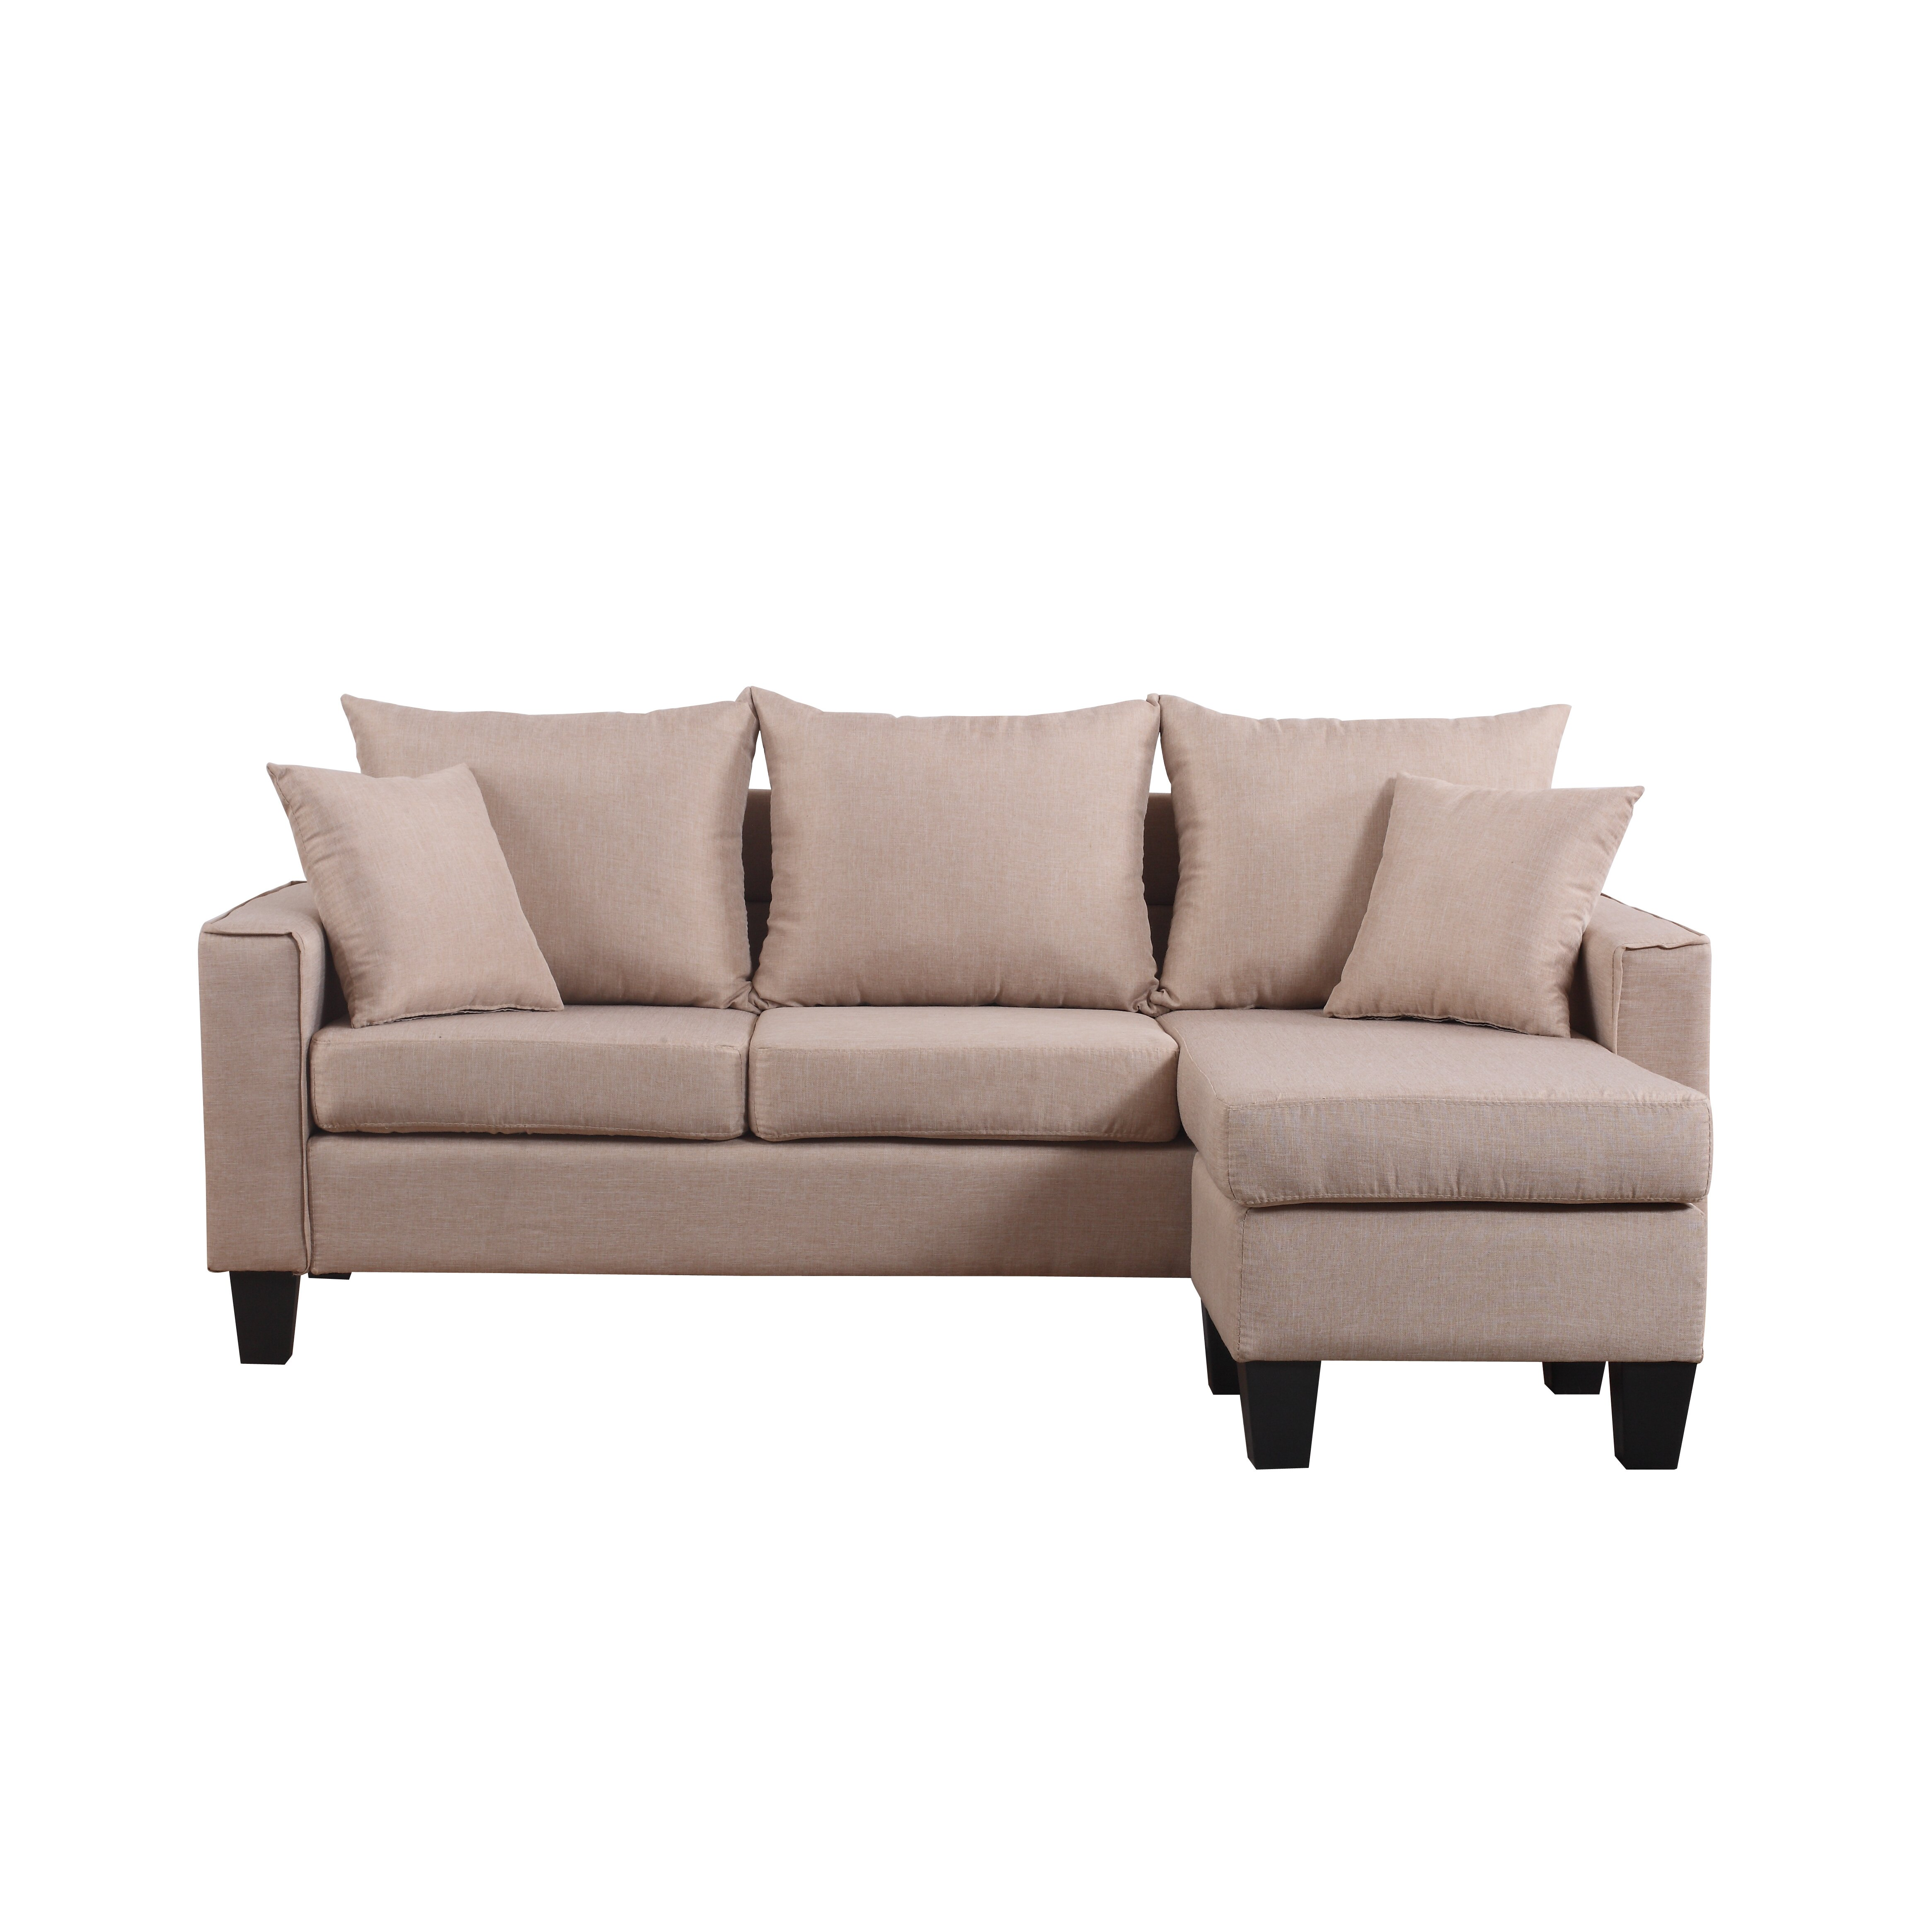 Modern Linen Fabric Small Space Sectional Sofa with Reversible Chaise EXP72 MHUS1194